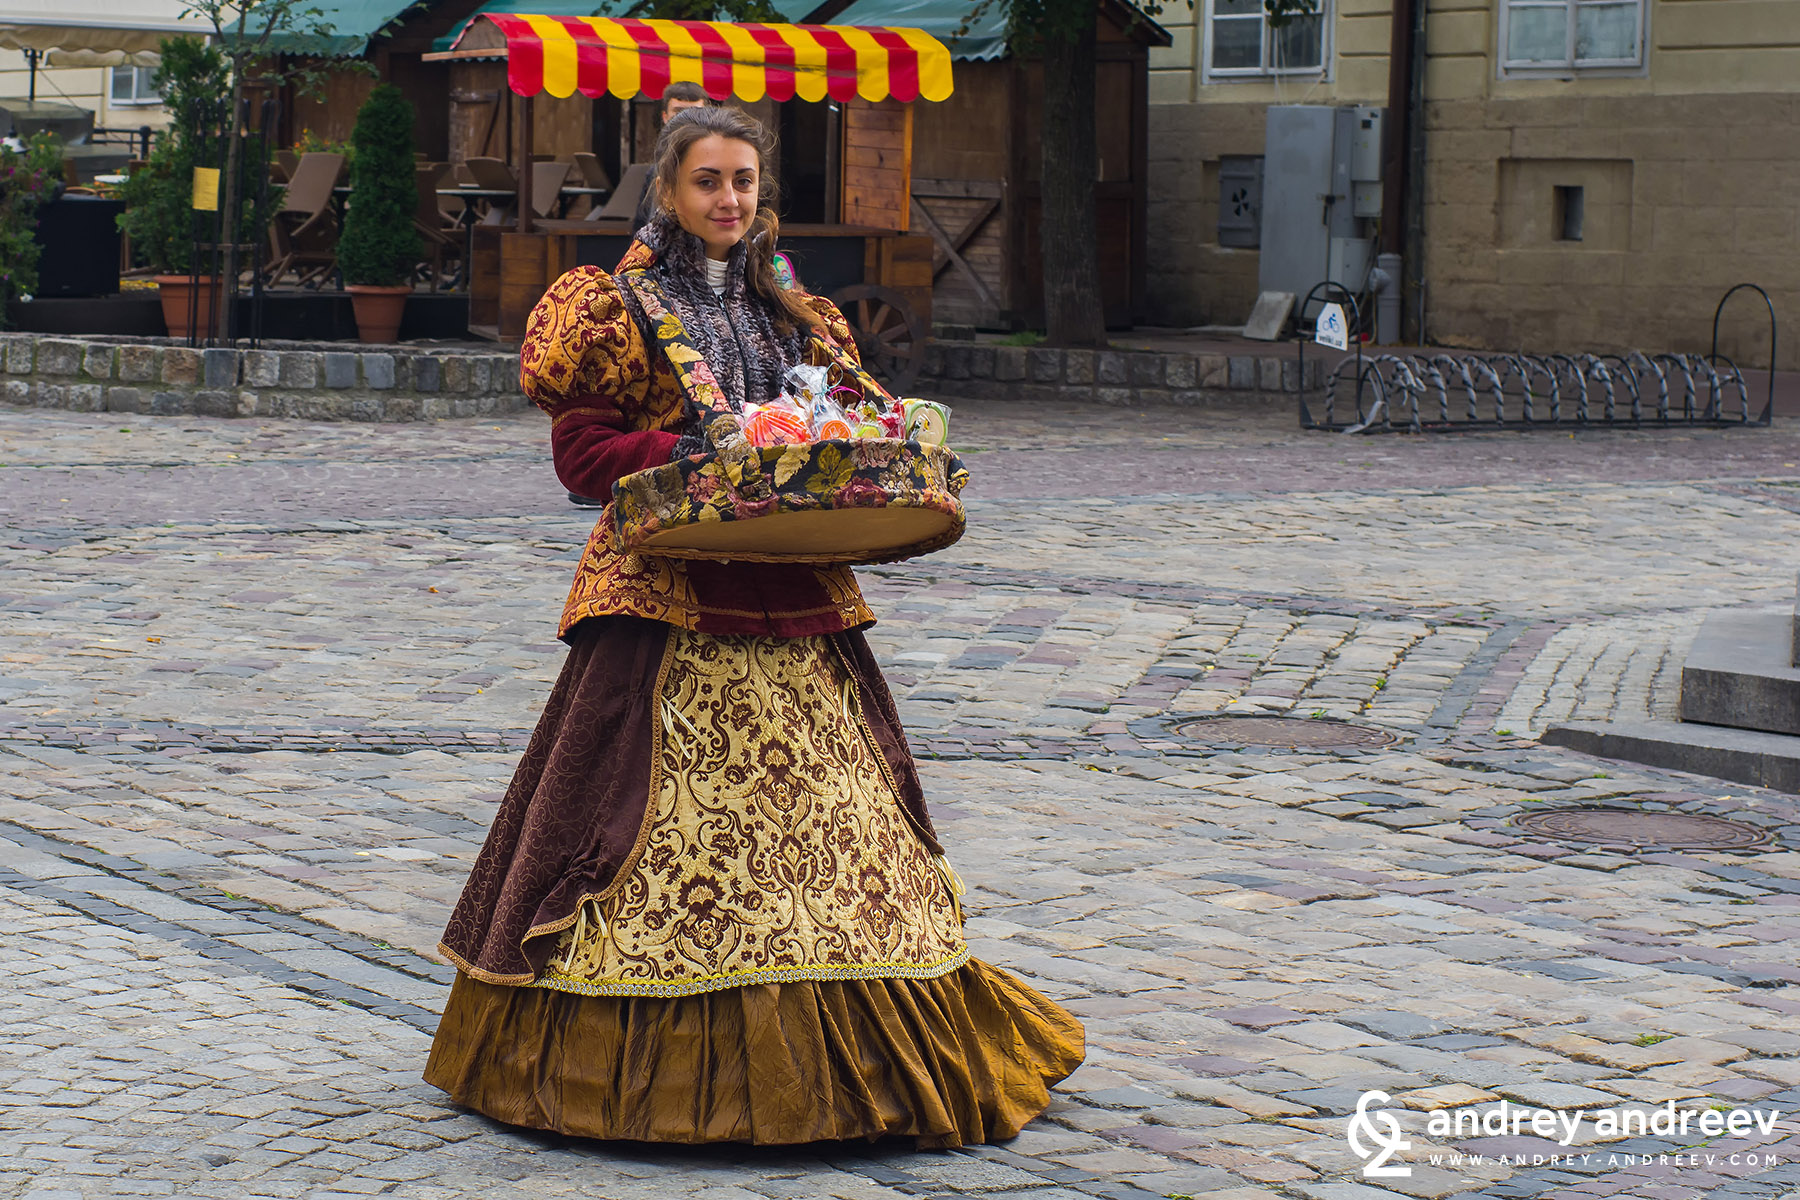 Girl from Lviv selling souvenirs to tourists